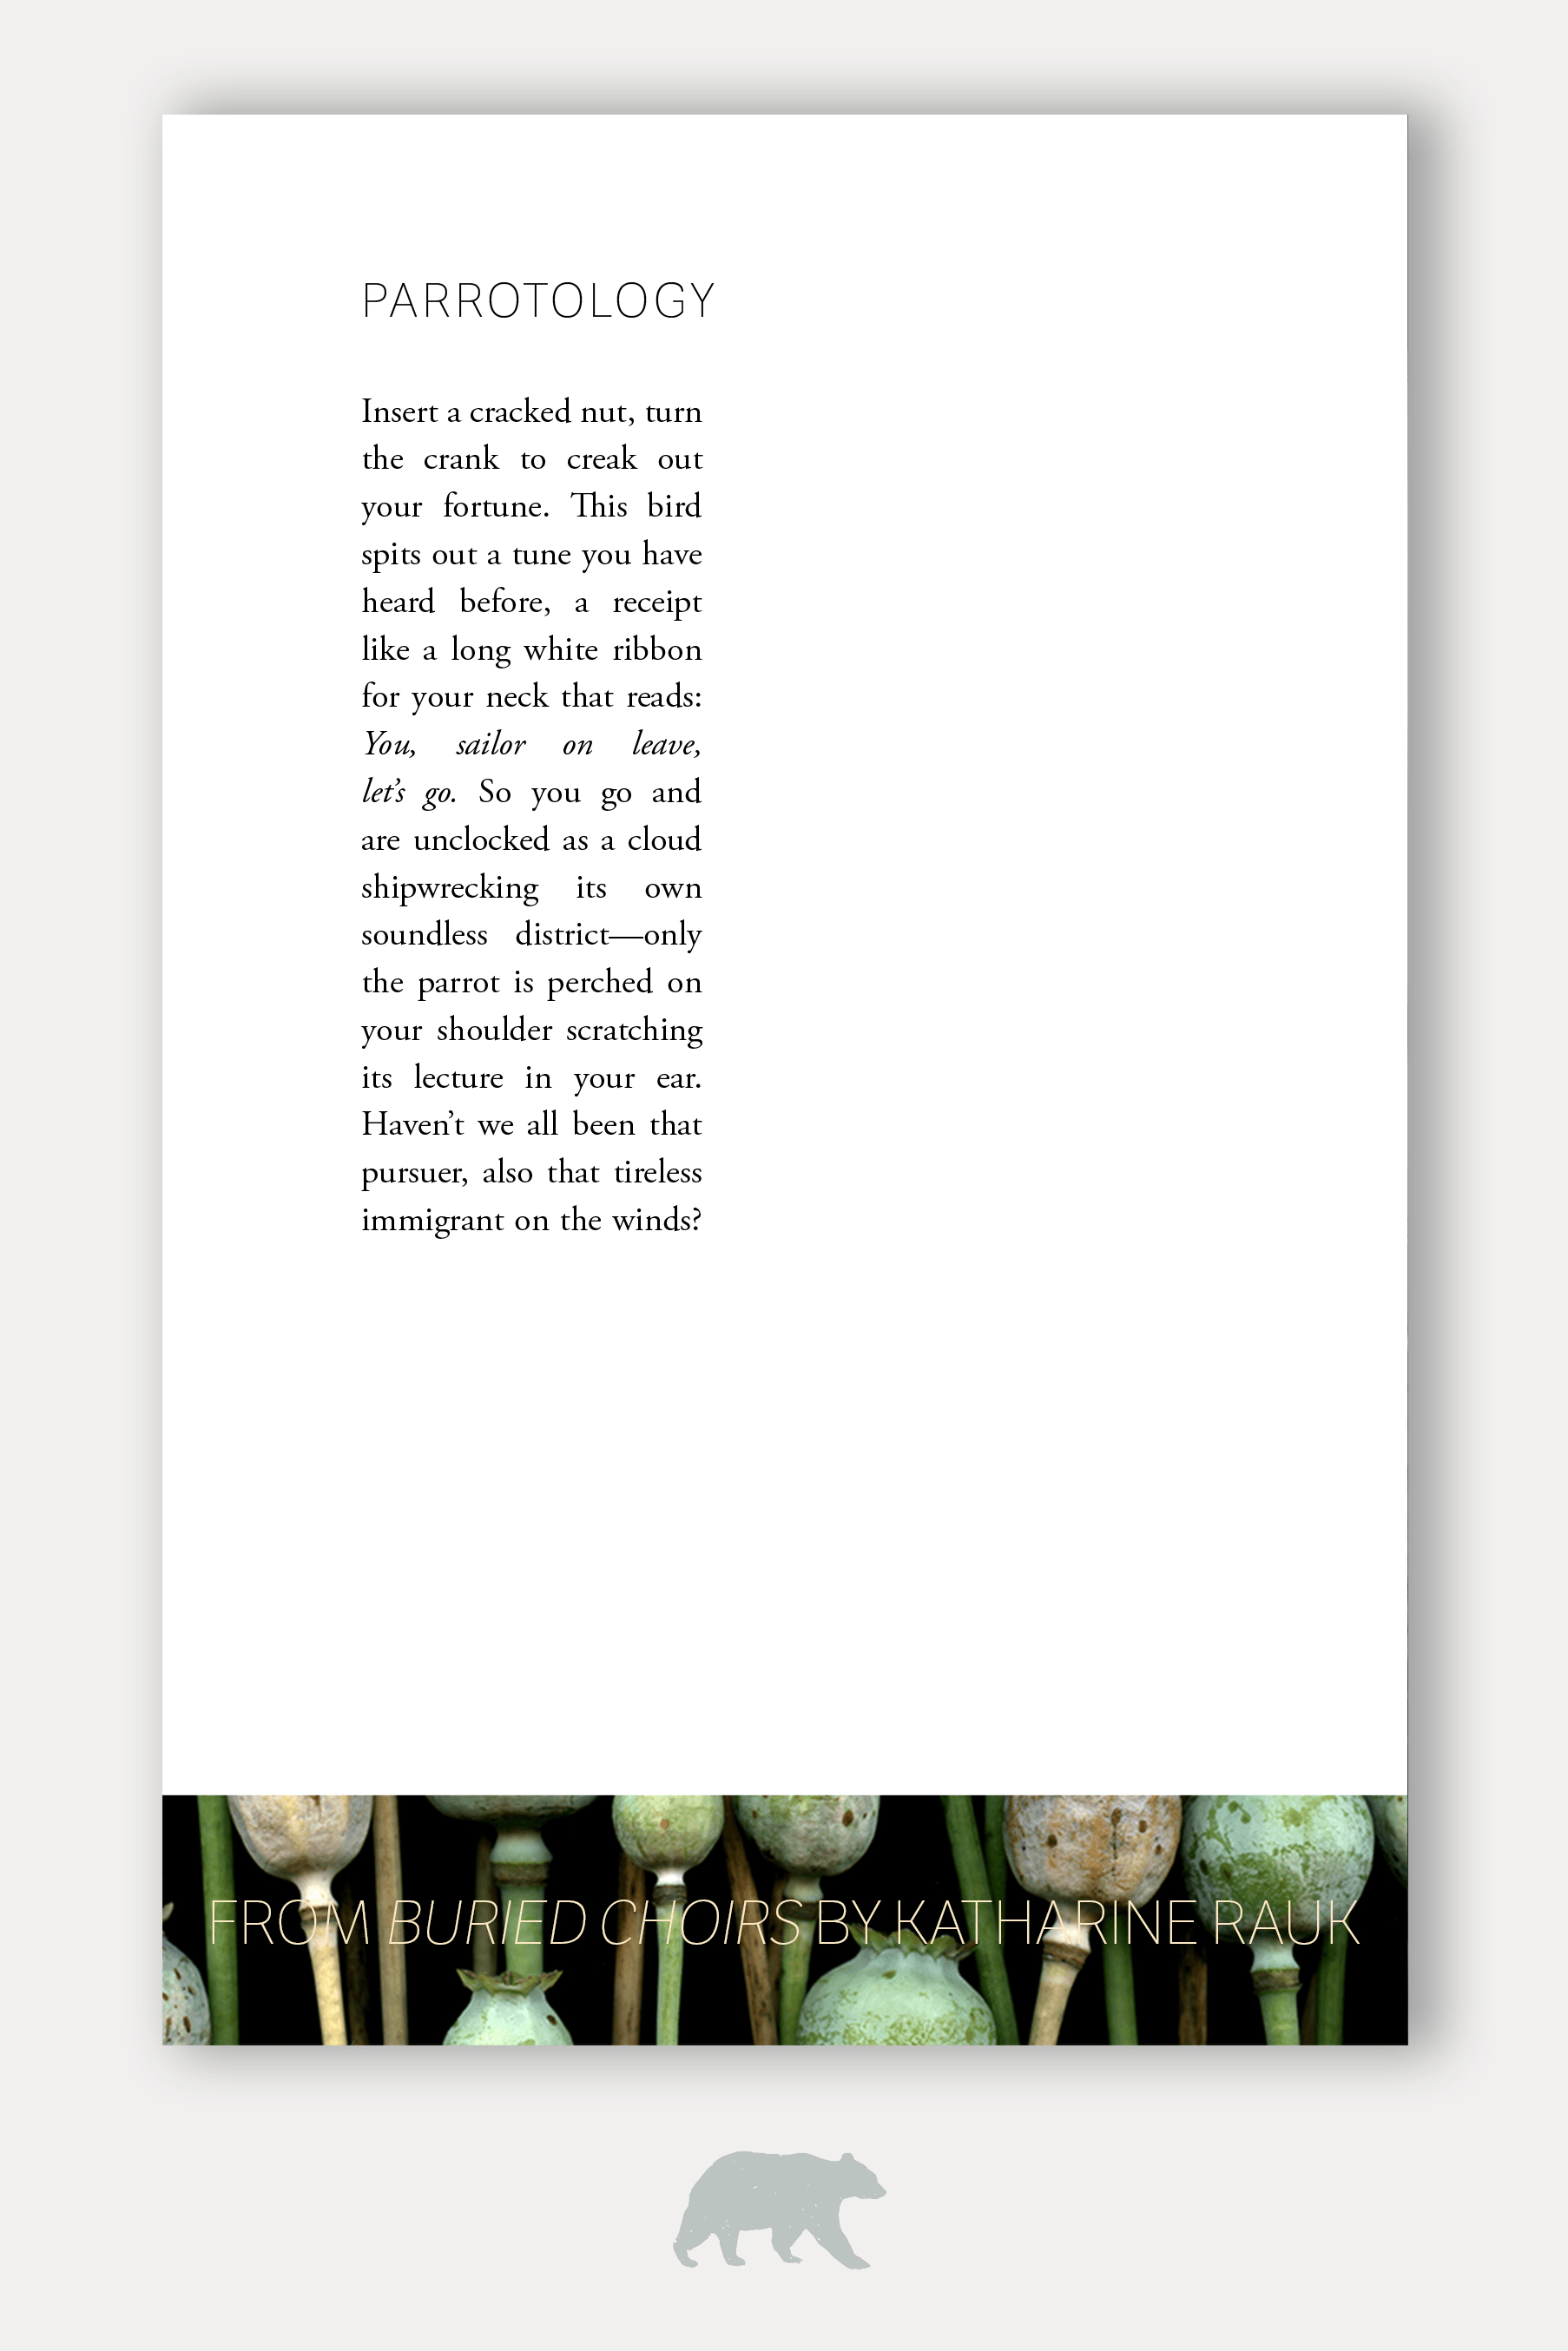 Interior Typesetting for Buried Choirs from Tinderbox Editions